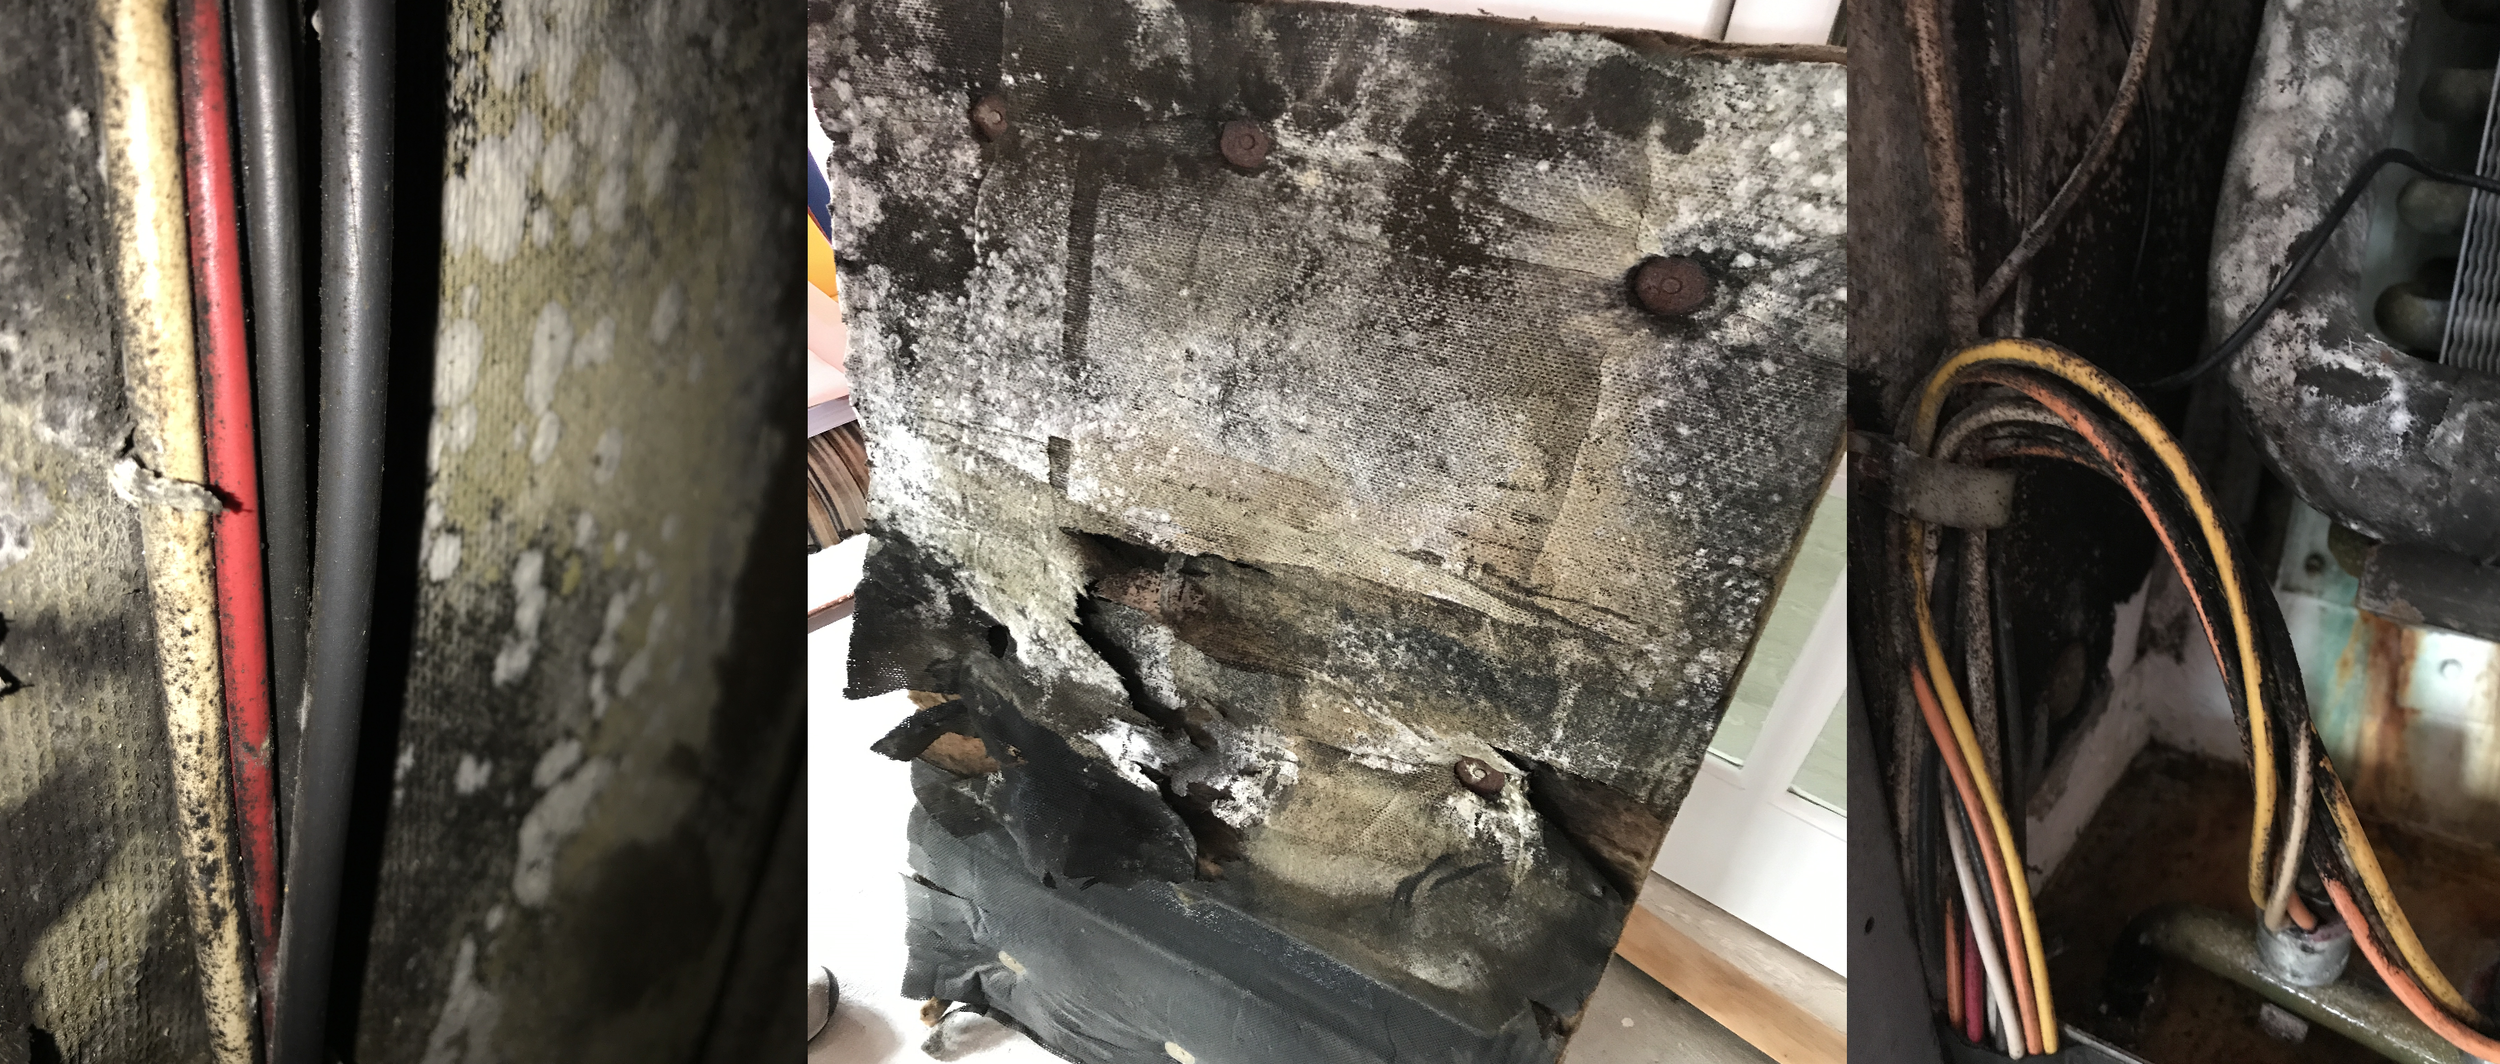 Actual examples of mold growth in clients fan coil units.